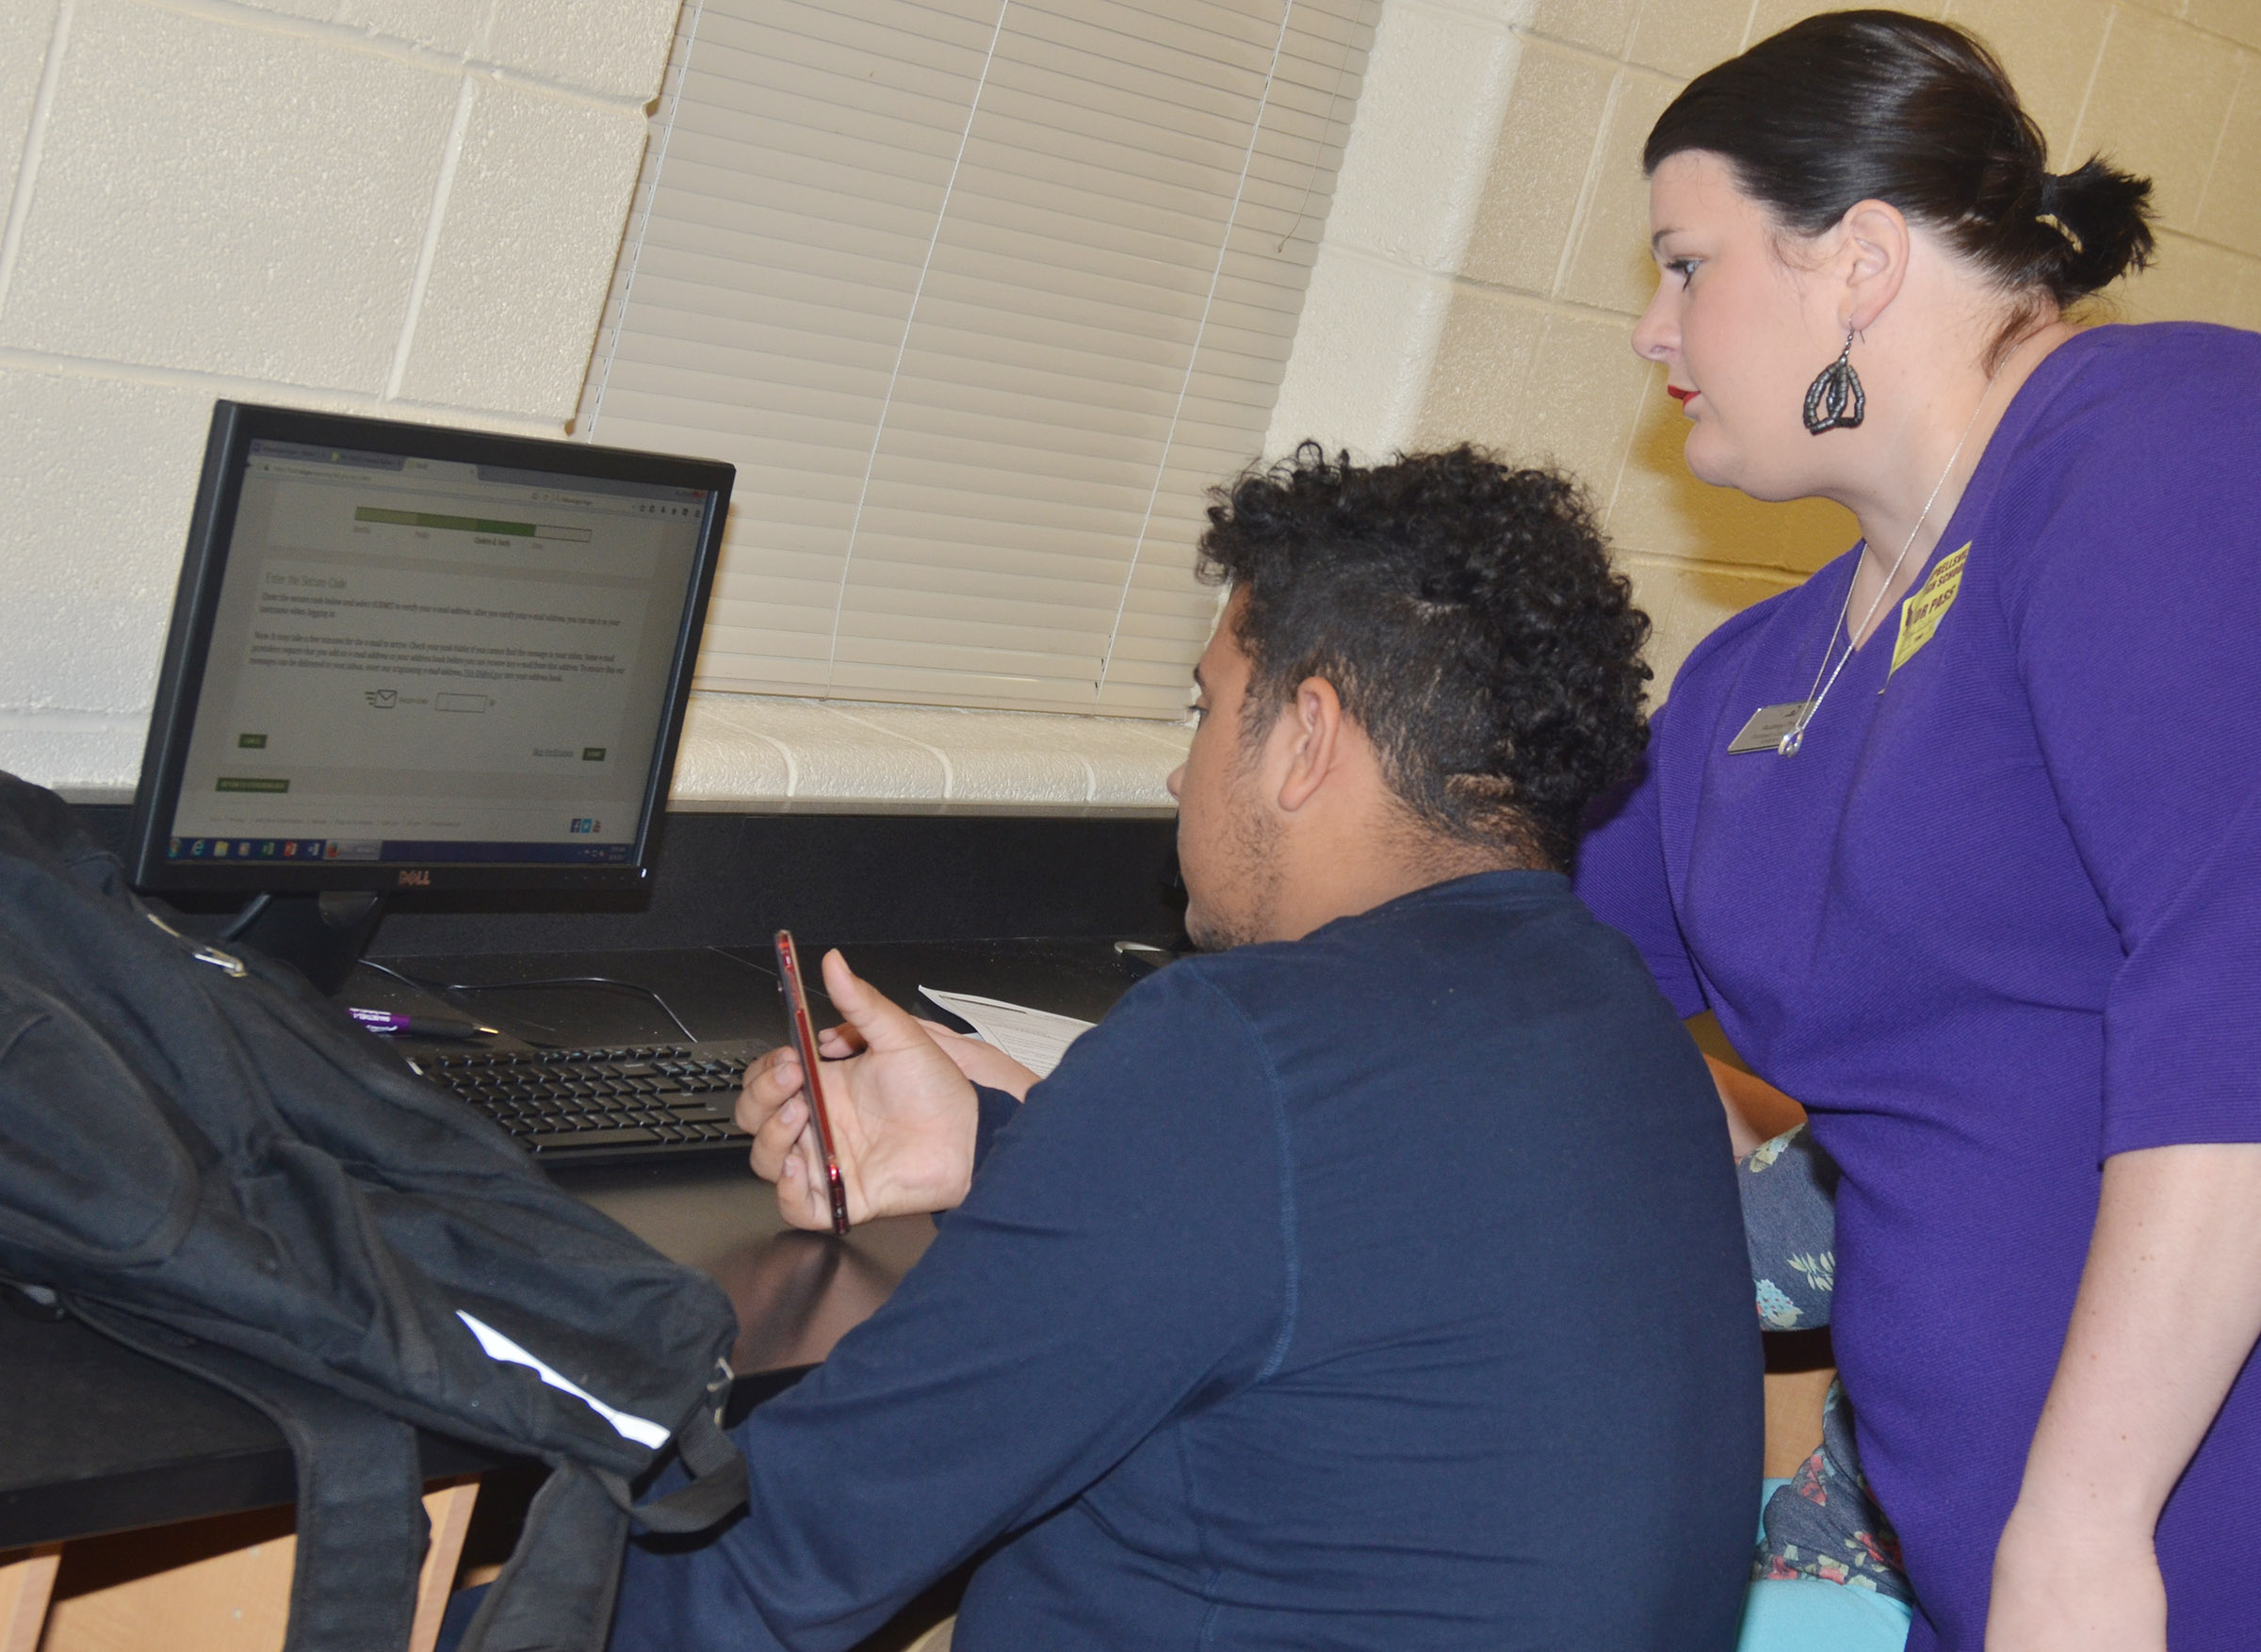 KHEAA representative Audrey Price helps CHS senior Adrian Cravens complete his FAFSA.